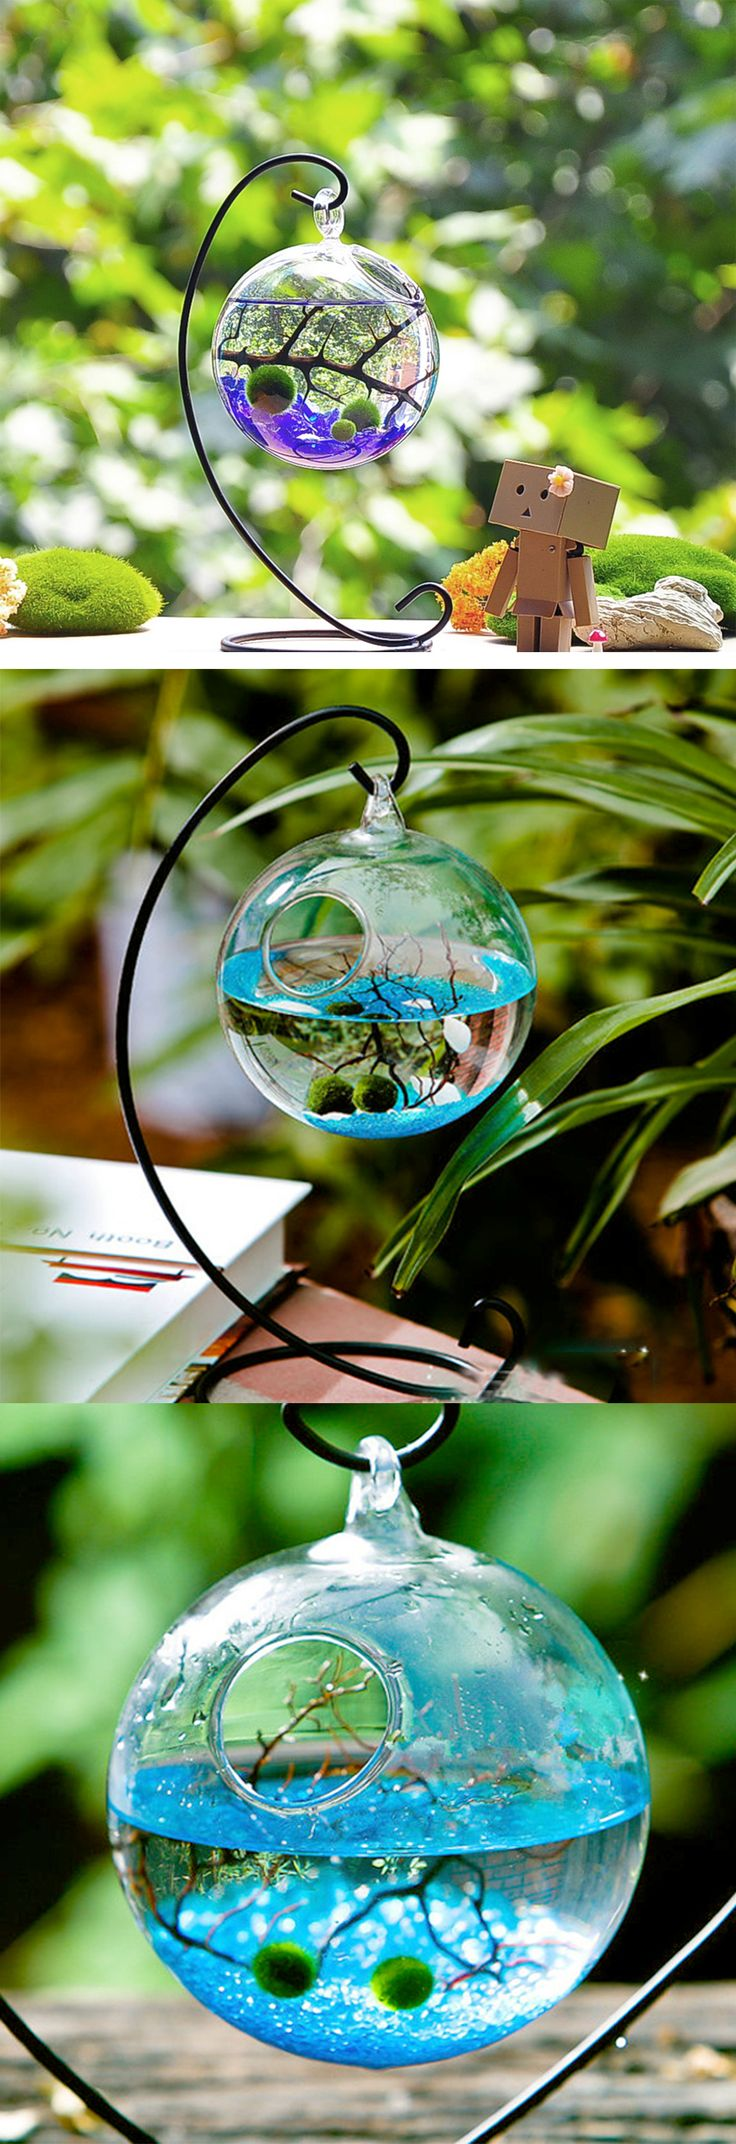 #Marimo #Terrarium kit comes with two easy-to-care-for algae balls and everything you need to create a serene scene. Bring #Zen to Your Den. #apollobox